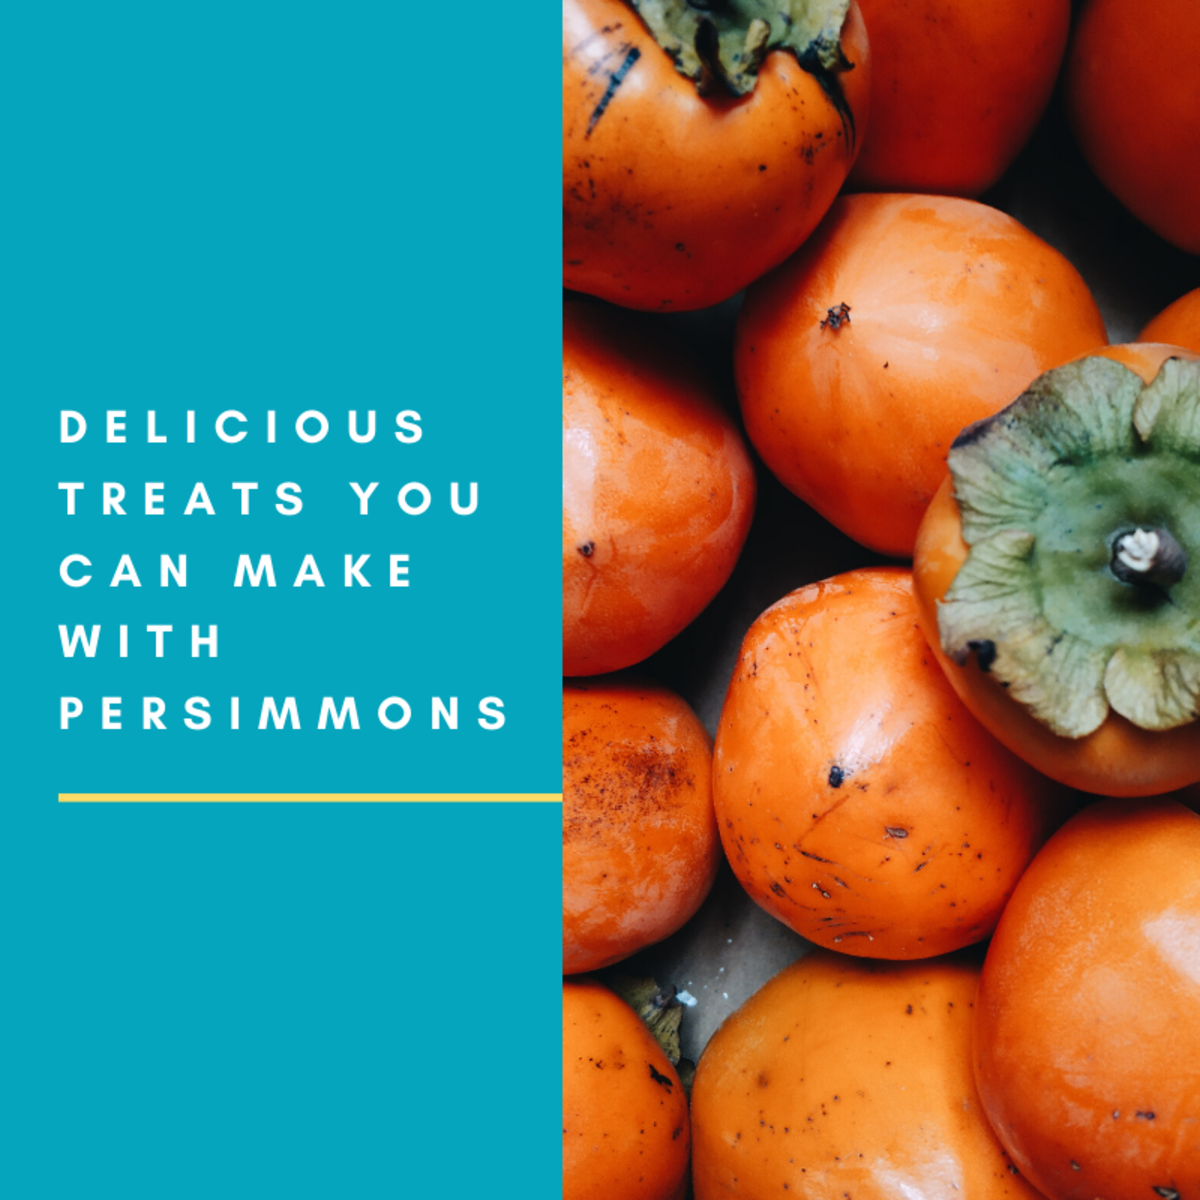 Persimmons: Delicious Treats With a Potentially Fuzzy Mouth Texture